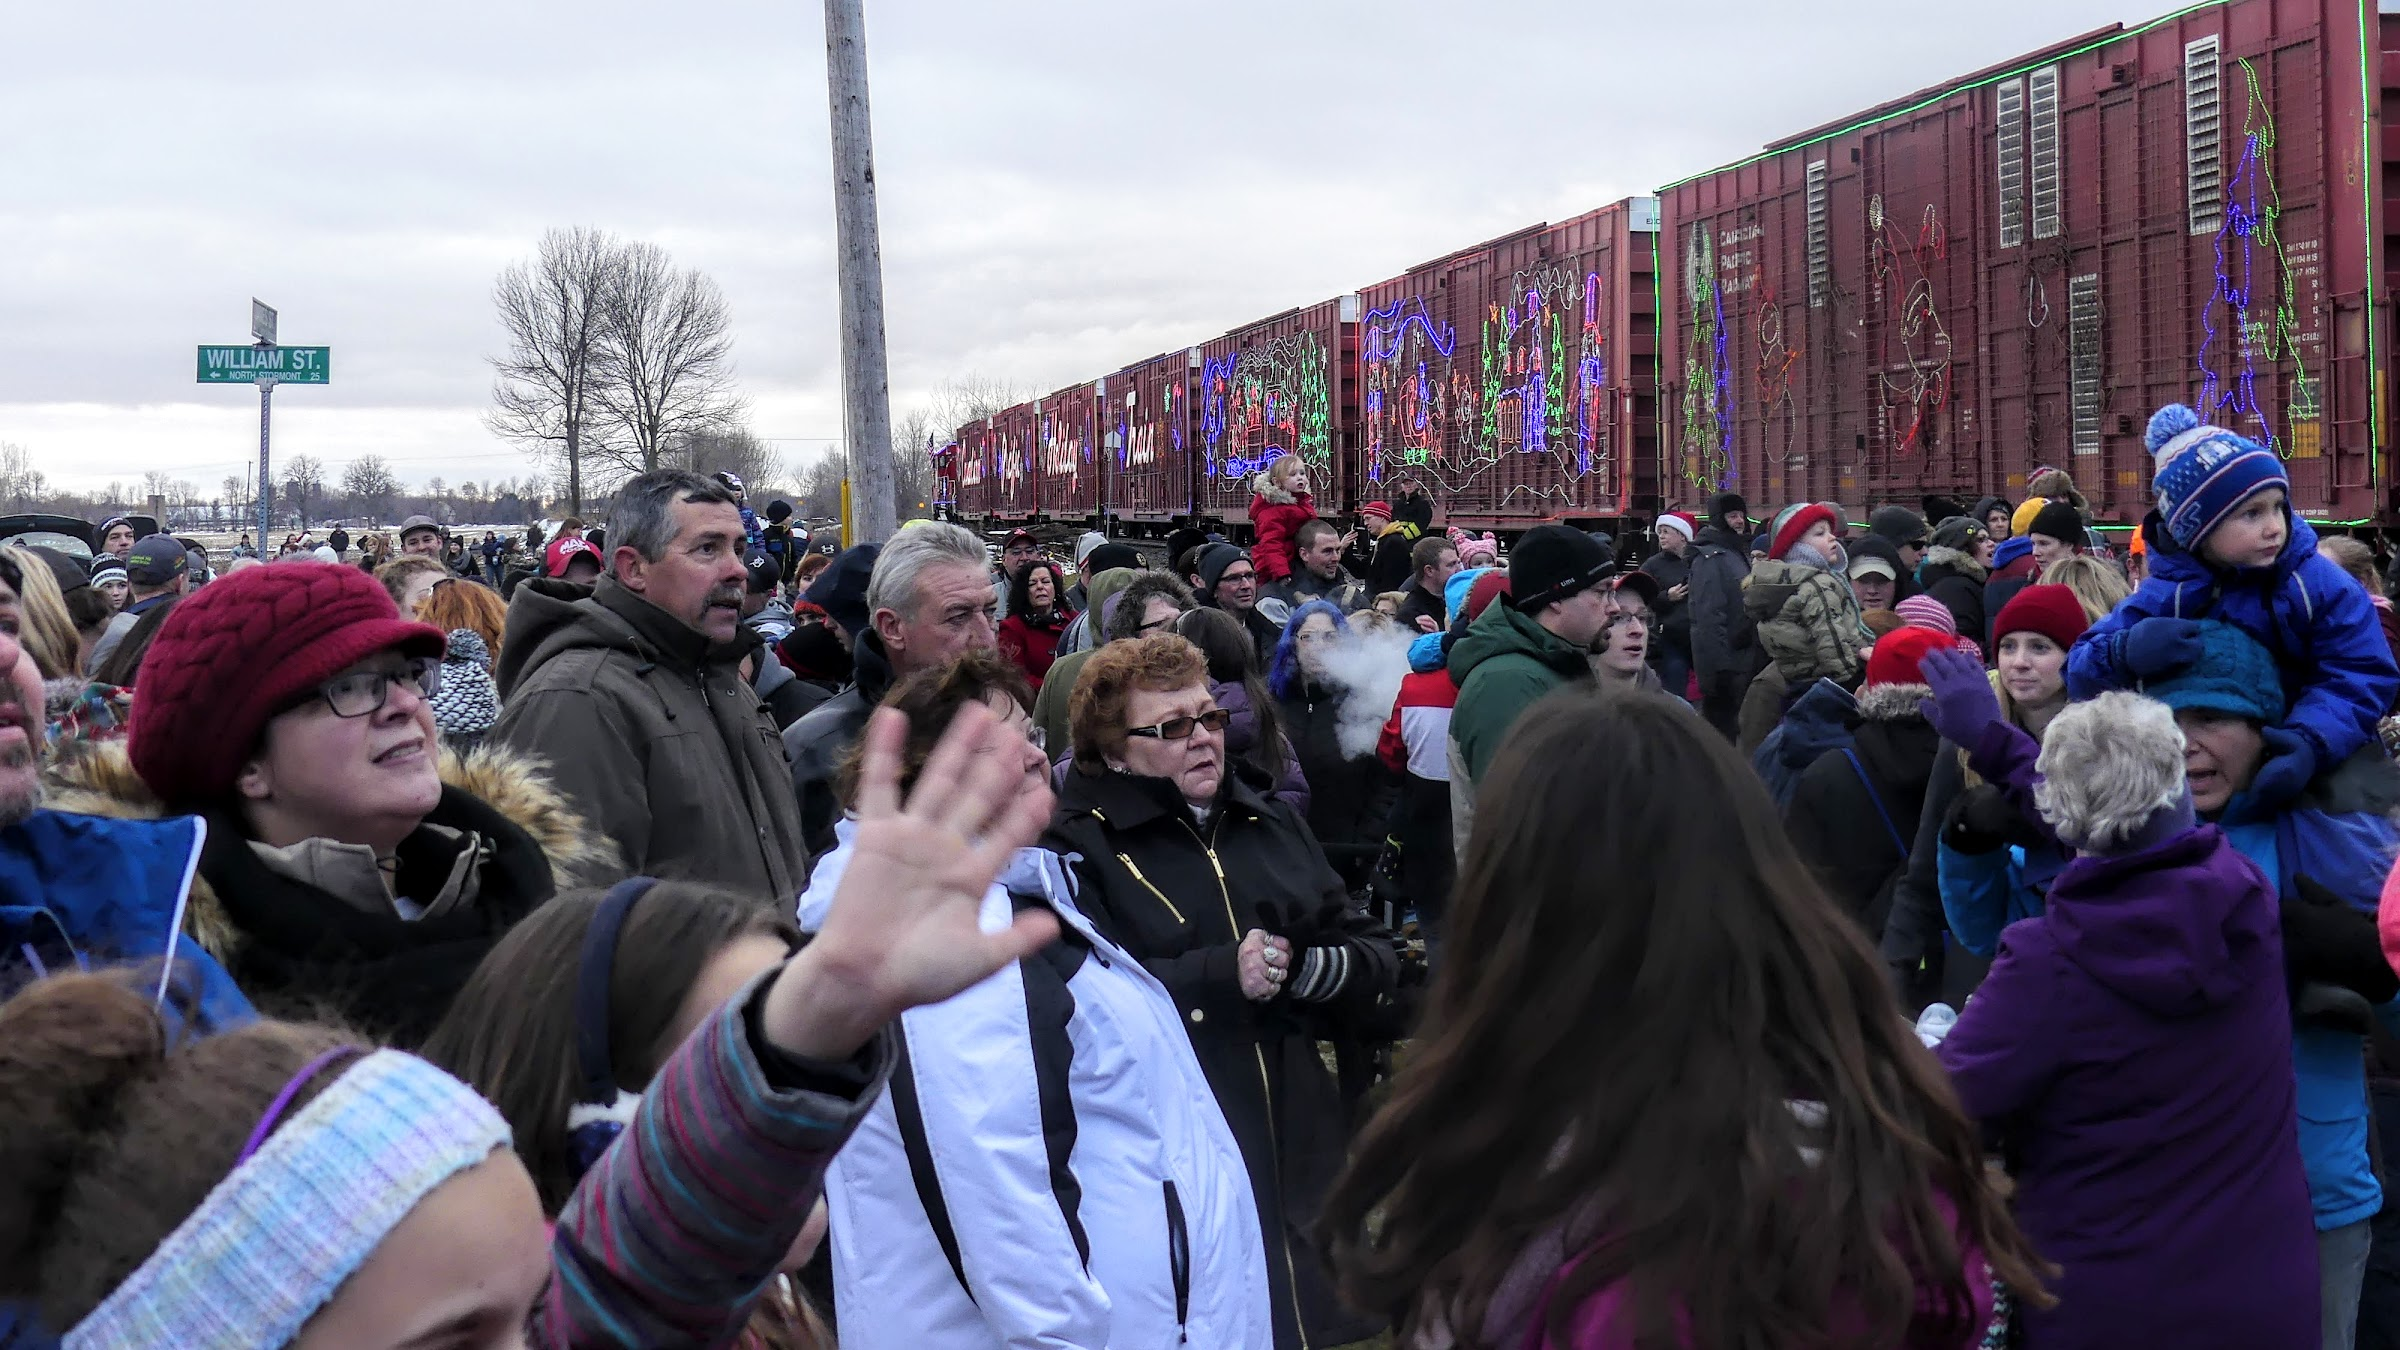 Crowds at the CP Holiday Train's 2016 appearance in Finch. Zandbergen photo, Nation Valley News